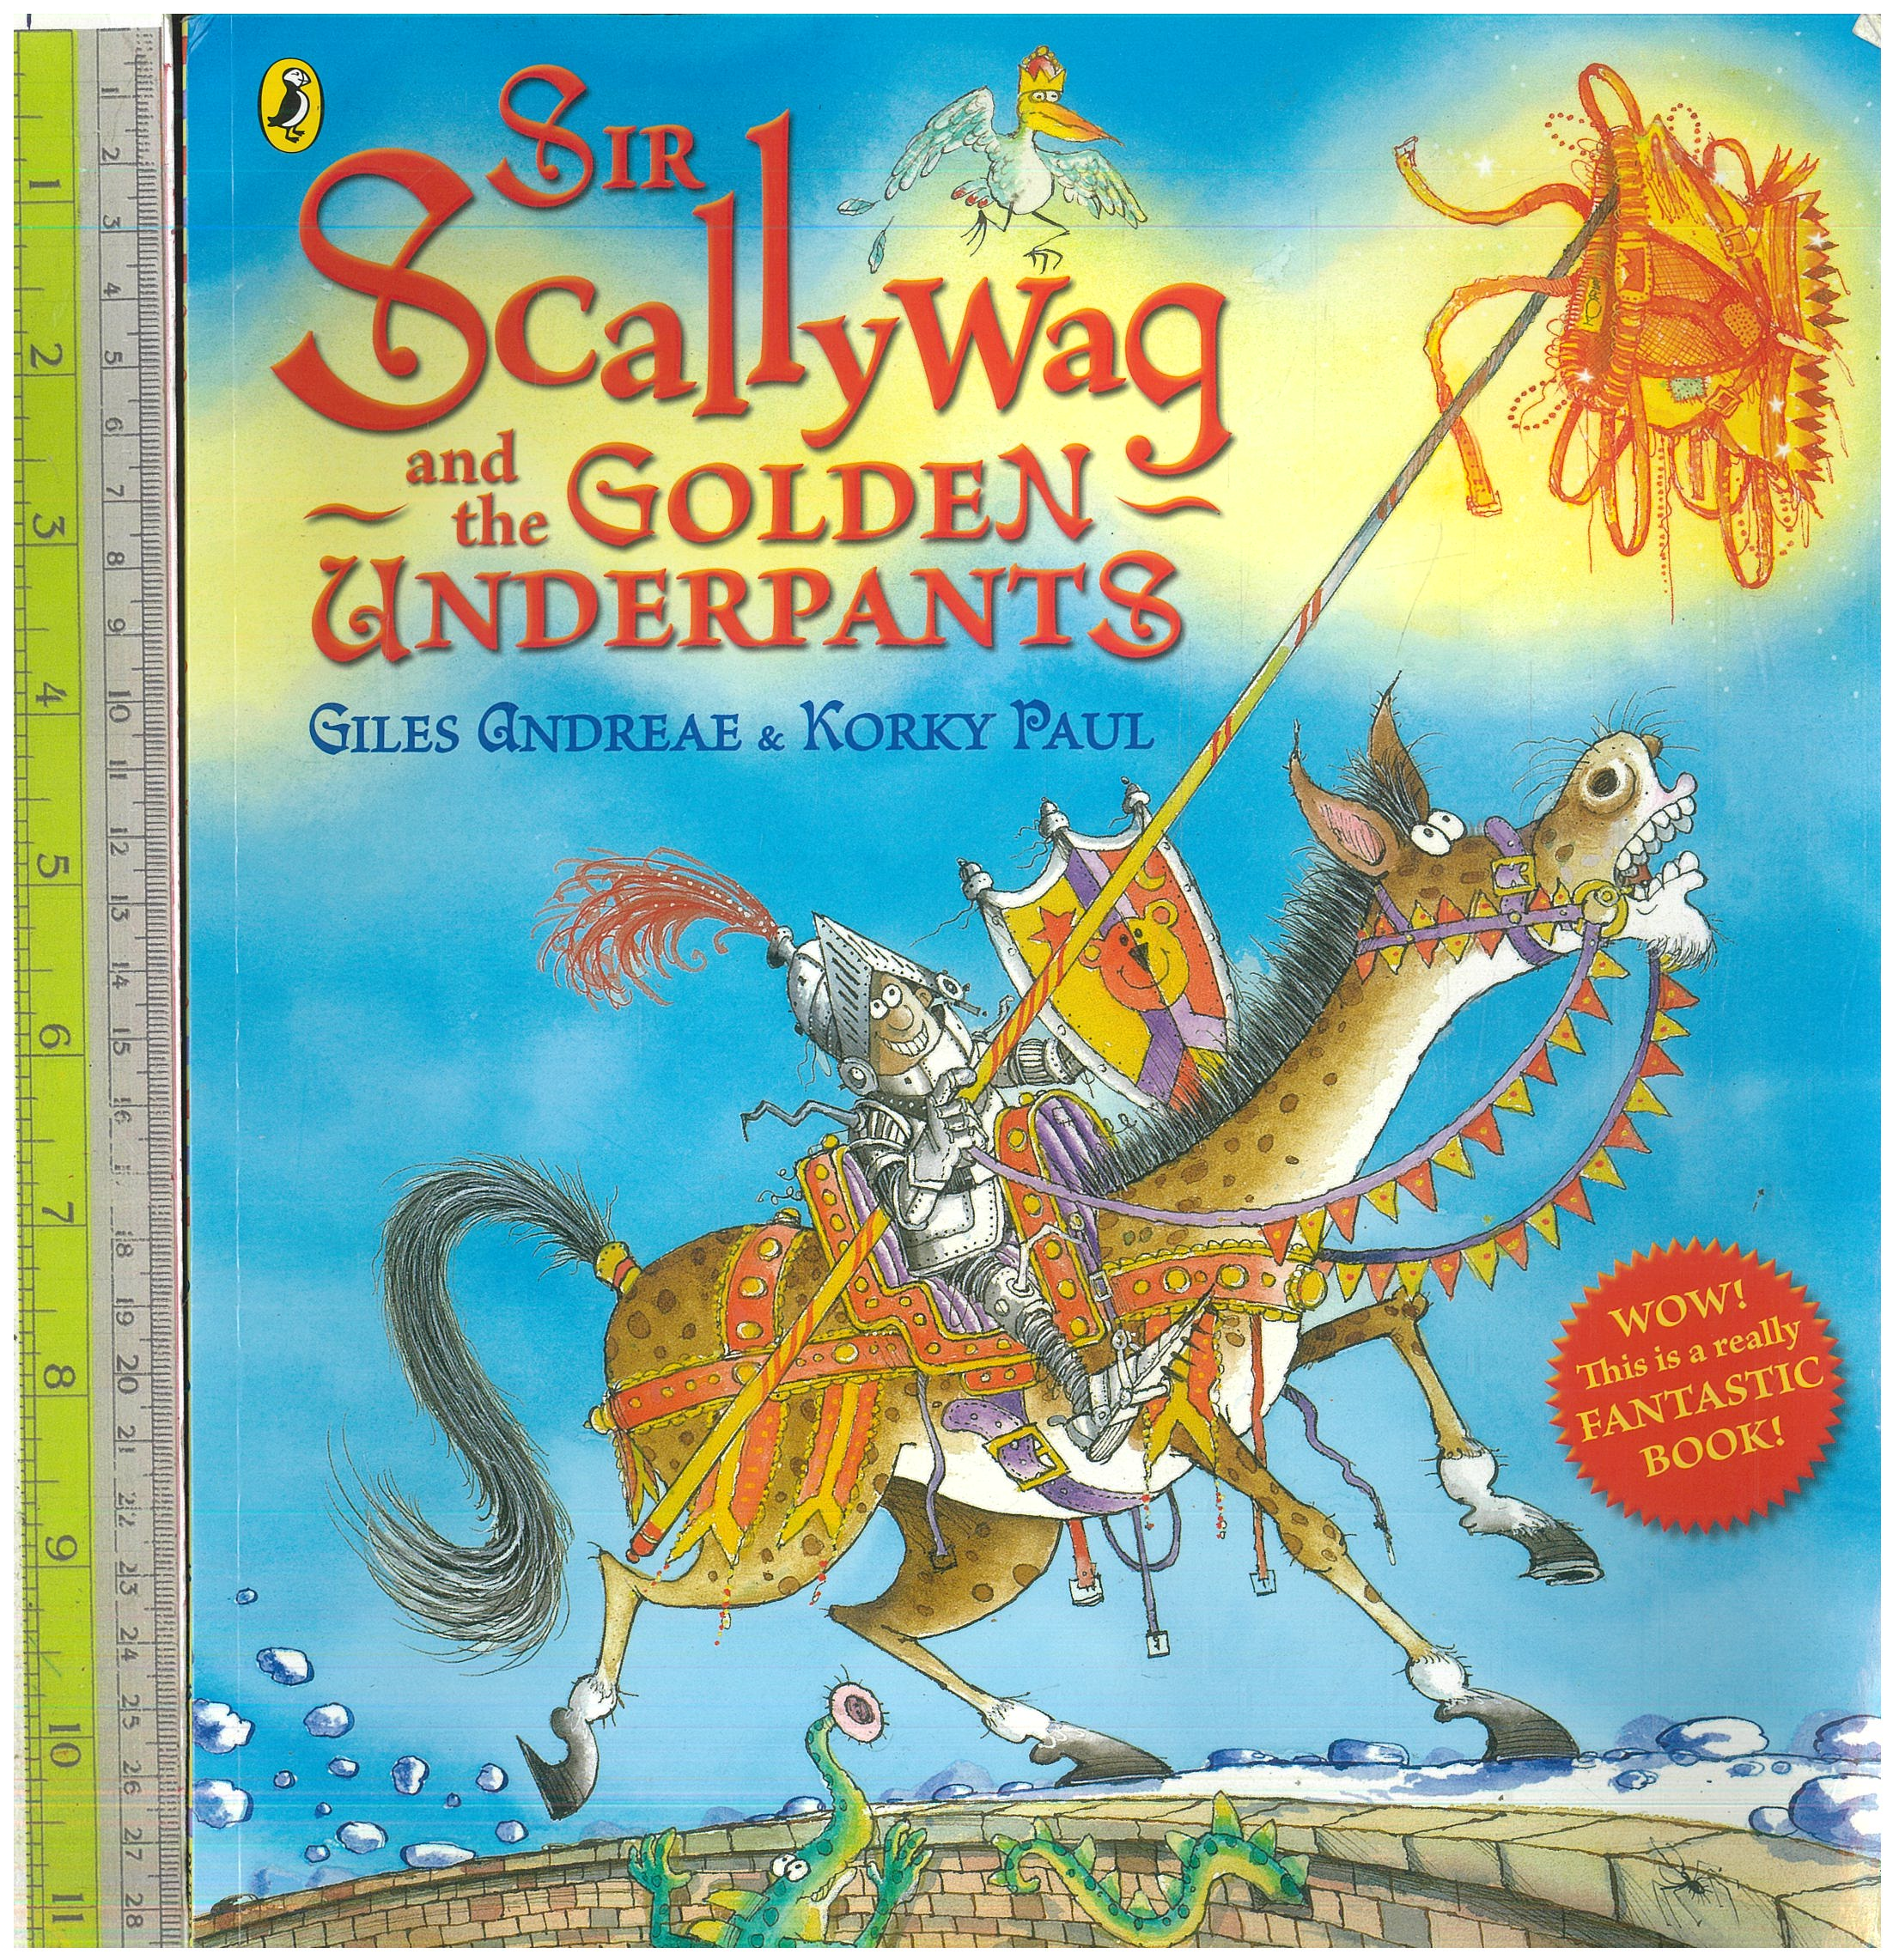 Scallywag and Golden